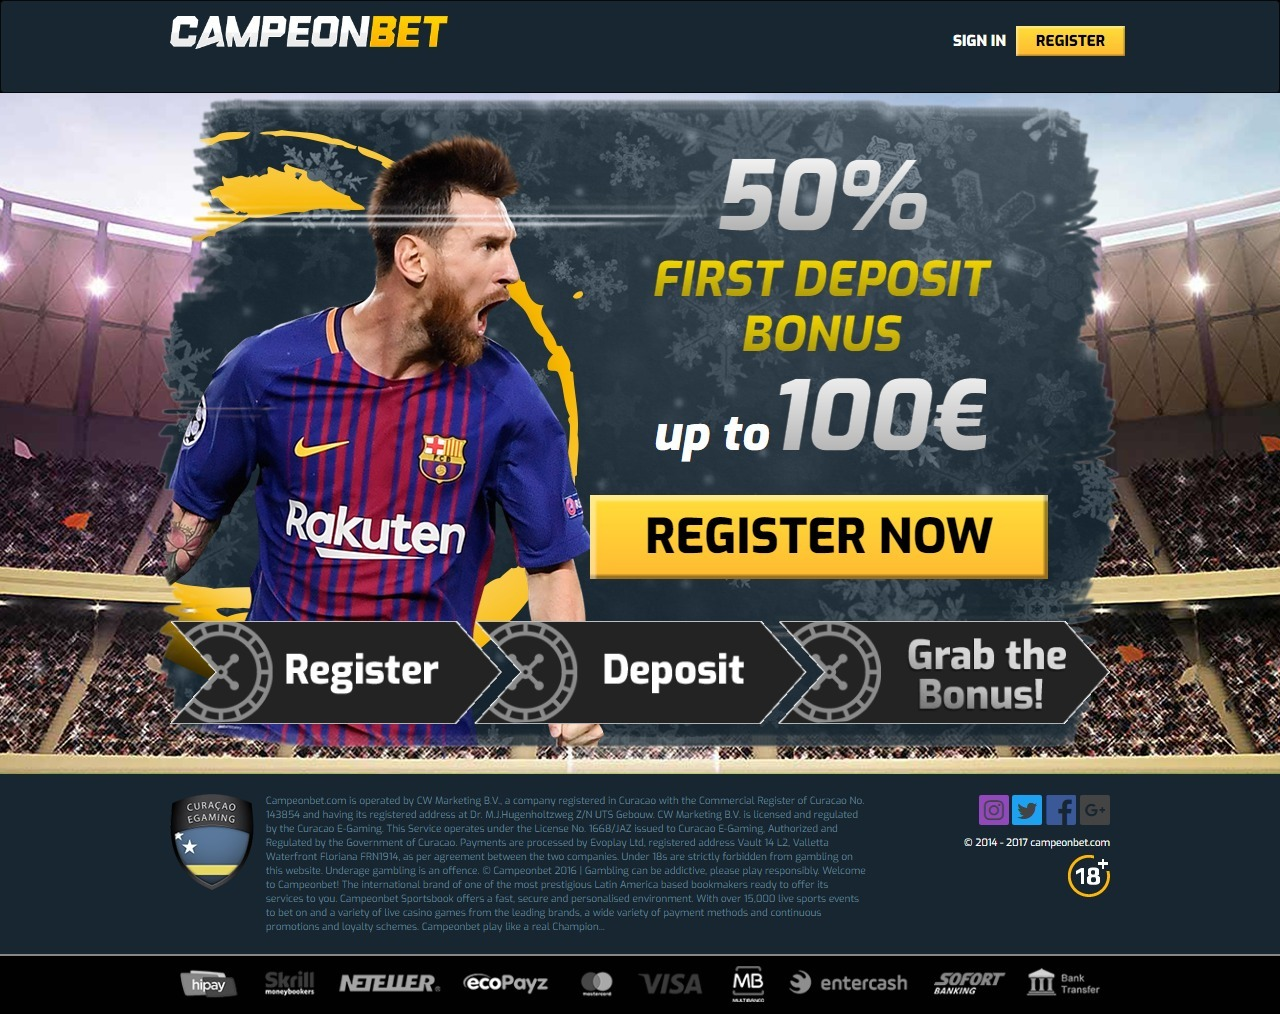 Campeonbet is one of the hottest entries in the sports betting world qM8lHXRoa7P_F0izhzaZO__ZFZA@1280x1014